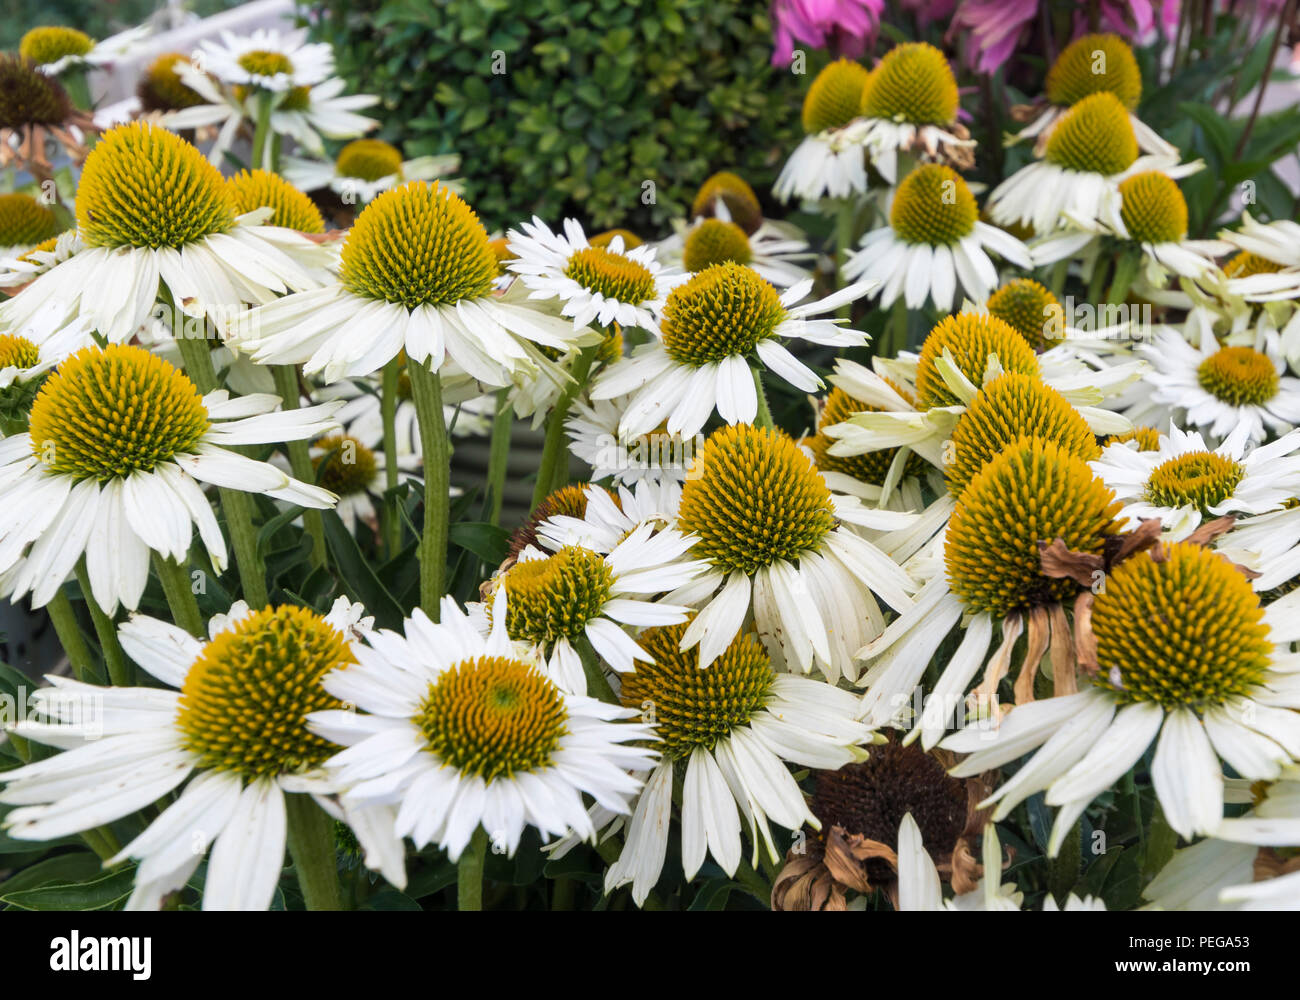 Echinacea 'White Meditation' flowers (Cone flower) in Summer in West Sussex, England, UK. - Stock Image